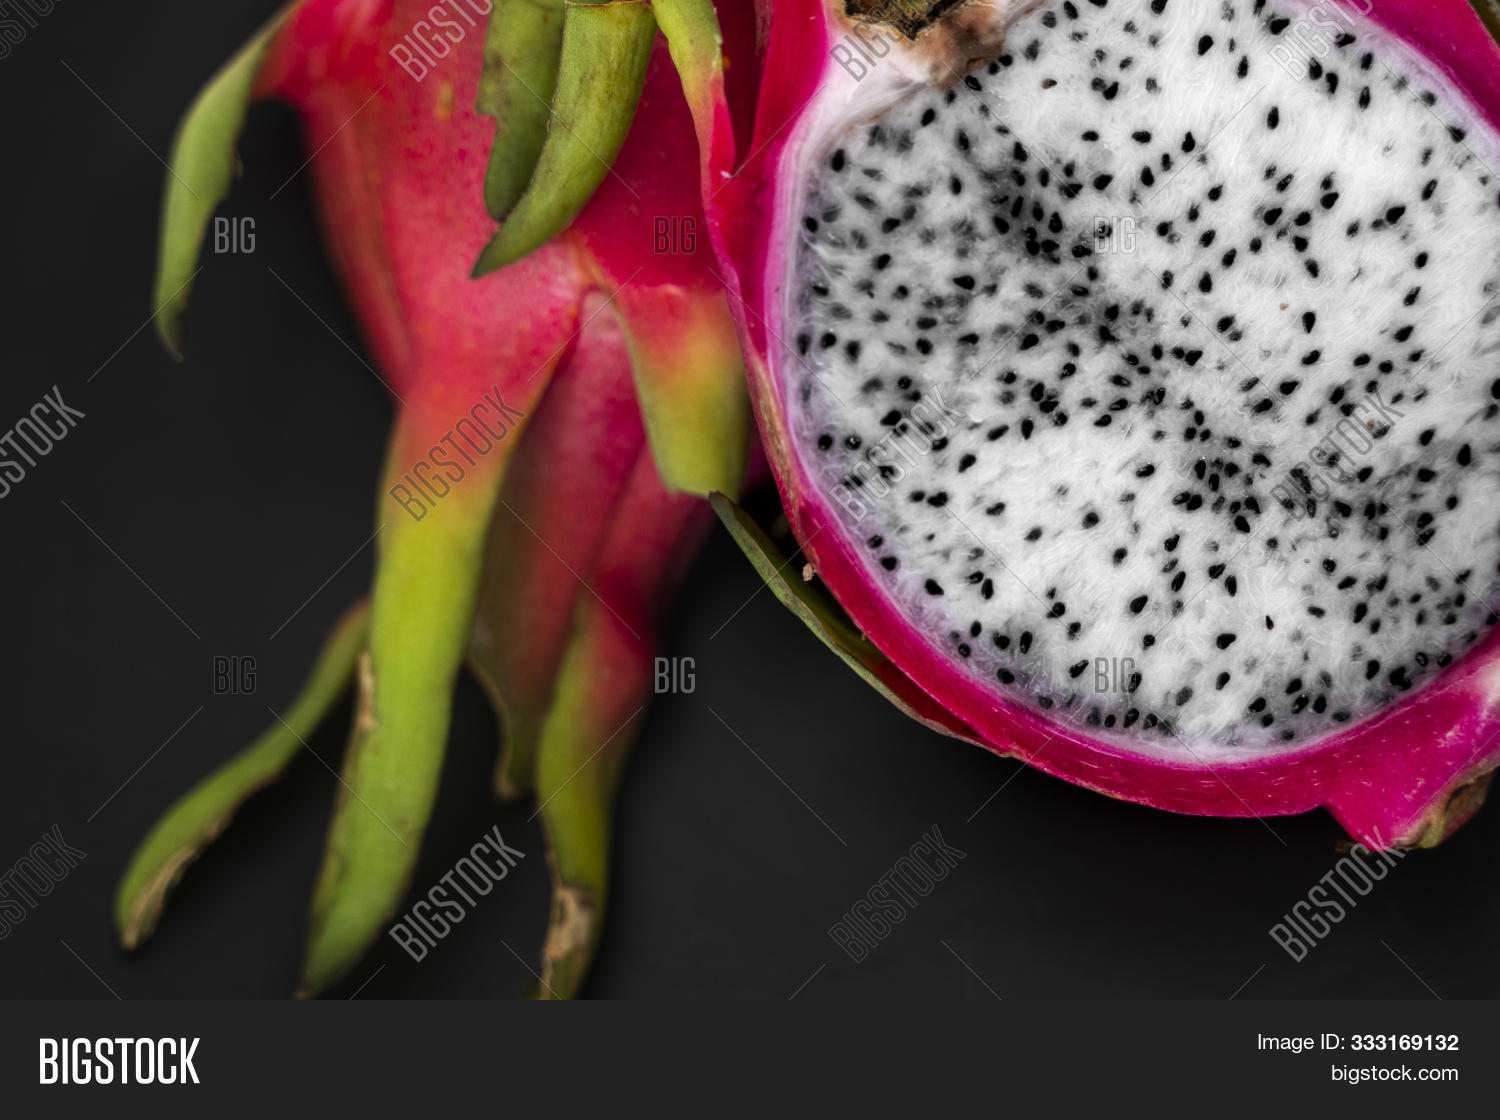 asia,asian,background,bright,cactus,close,closeup,color,cut,delicious,diet,dragon,dragon-fruit,dragonfruit,eat,exotic,food,fresh,freshness,fruit,green,half,health,healthy,isolated,juicy,leaf,macro,natural,nature,nutrition,organic,pink,pitahaya,pitaya,raw,red,ripe,seeds,slice,succulent,summer,sweet,tasty,thailand,tropical,vibrant,white,whole